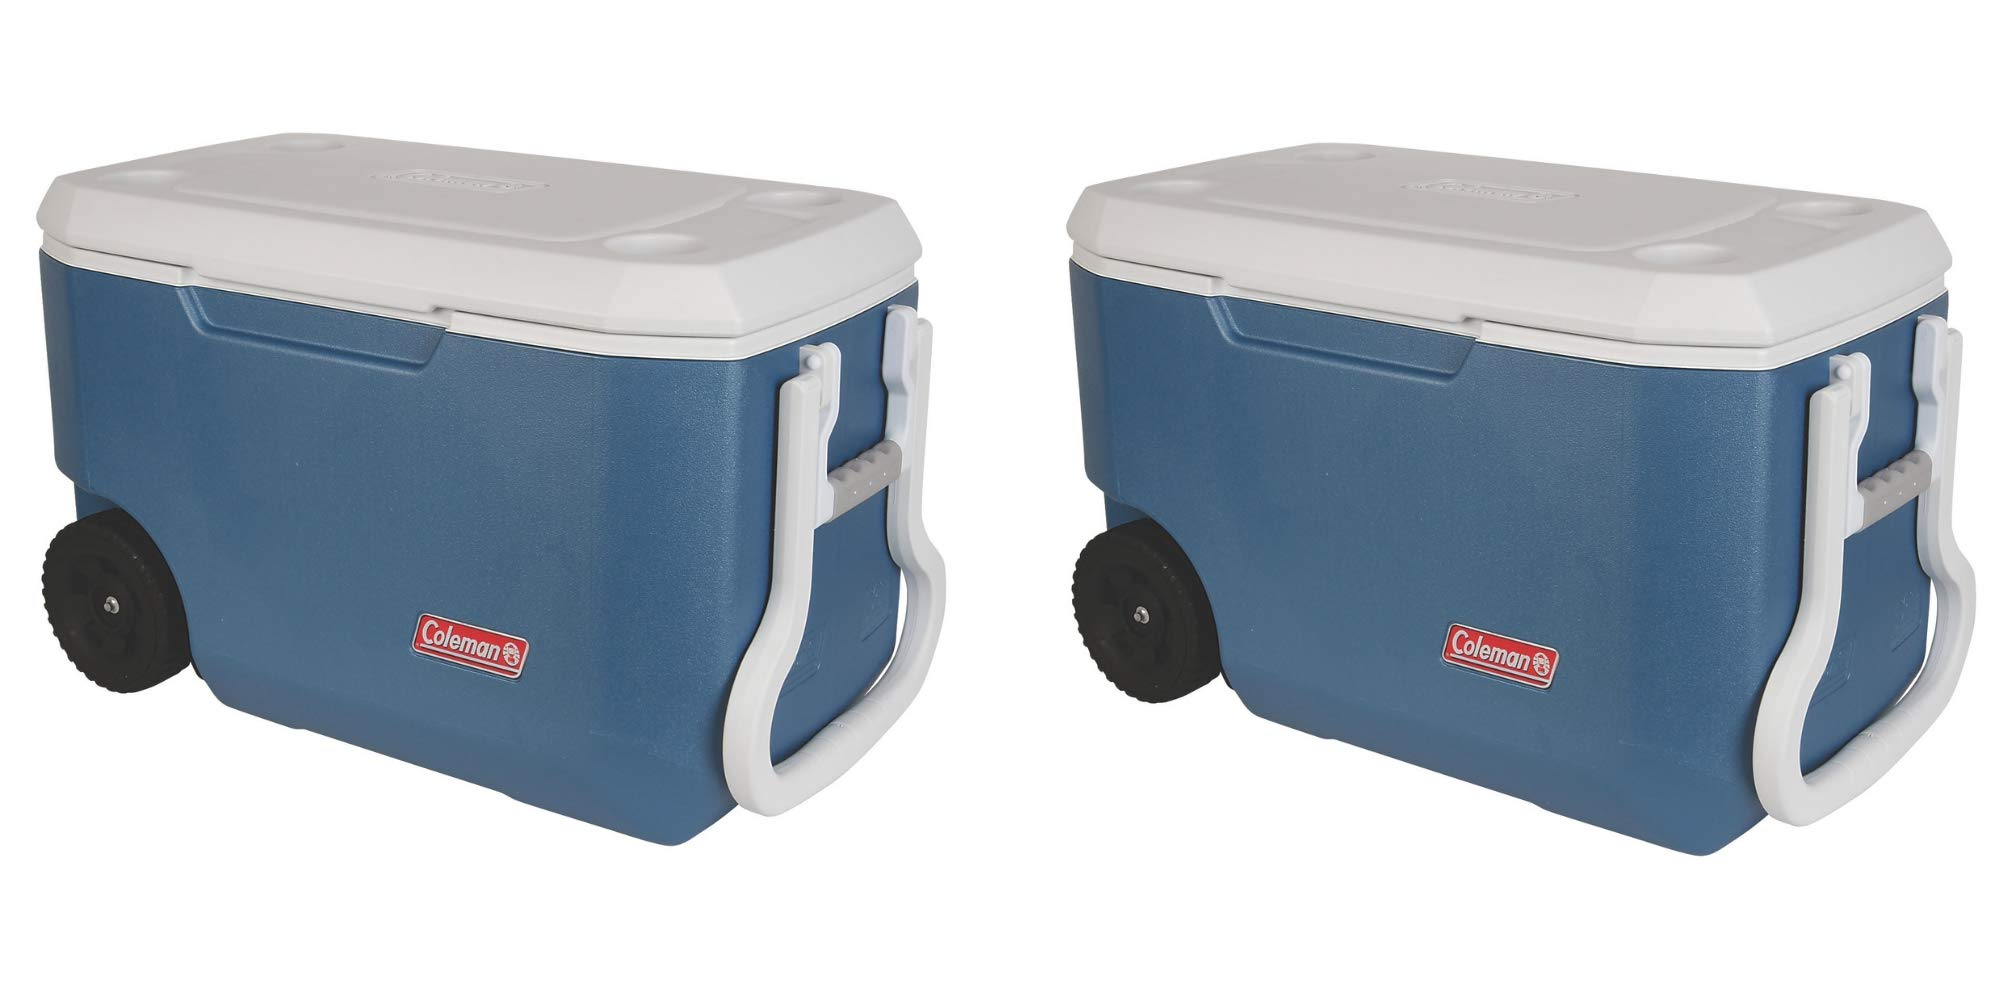 Coleman 62-Quart Xtreme 5-Day Heavy-Duty Cooler with Wheels, Blue/Pack of 2